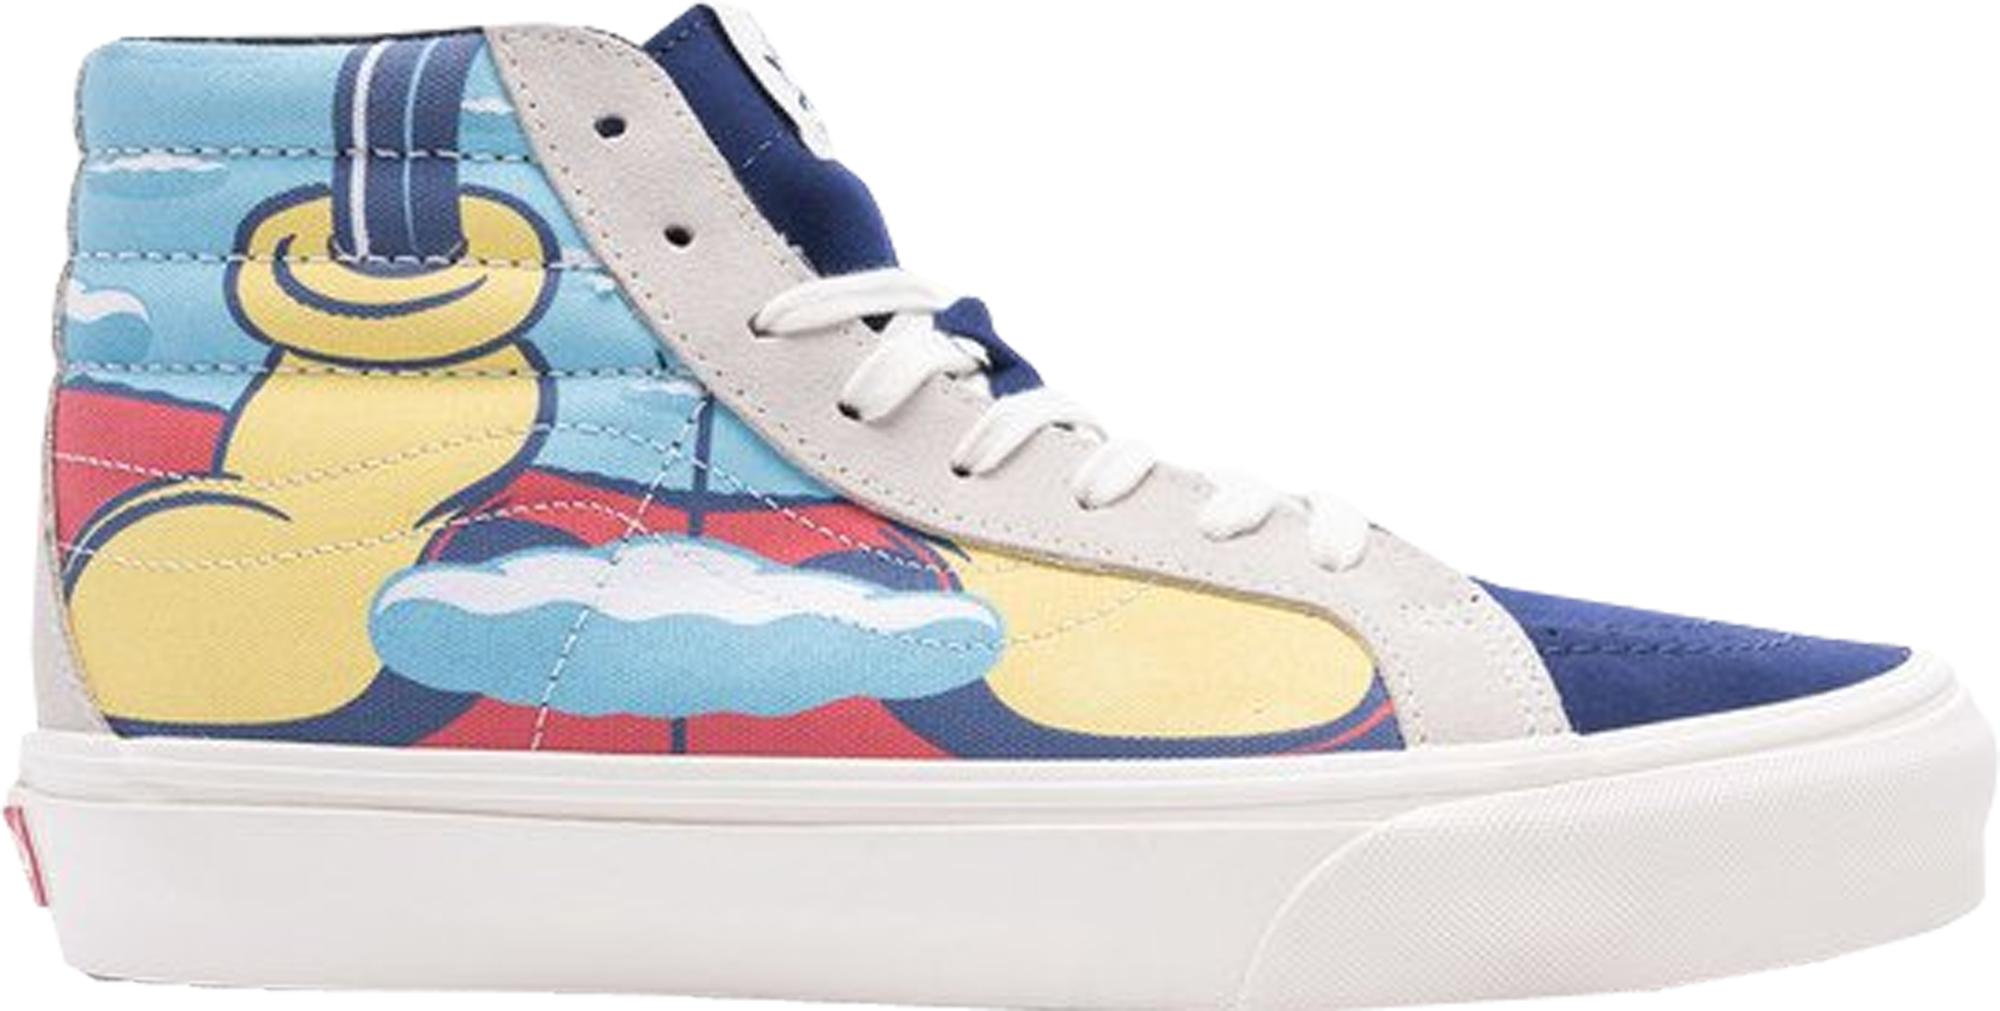 3351a27ba77b91 Lyst - Vans Sk8-hi Disney X John Van Hamersveld in Blue for Men ...